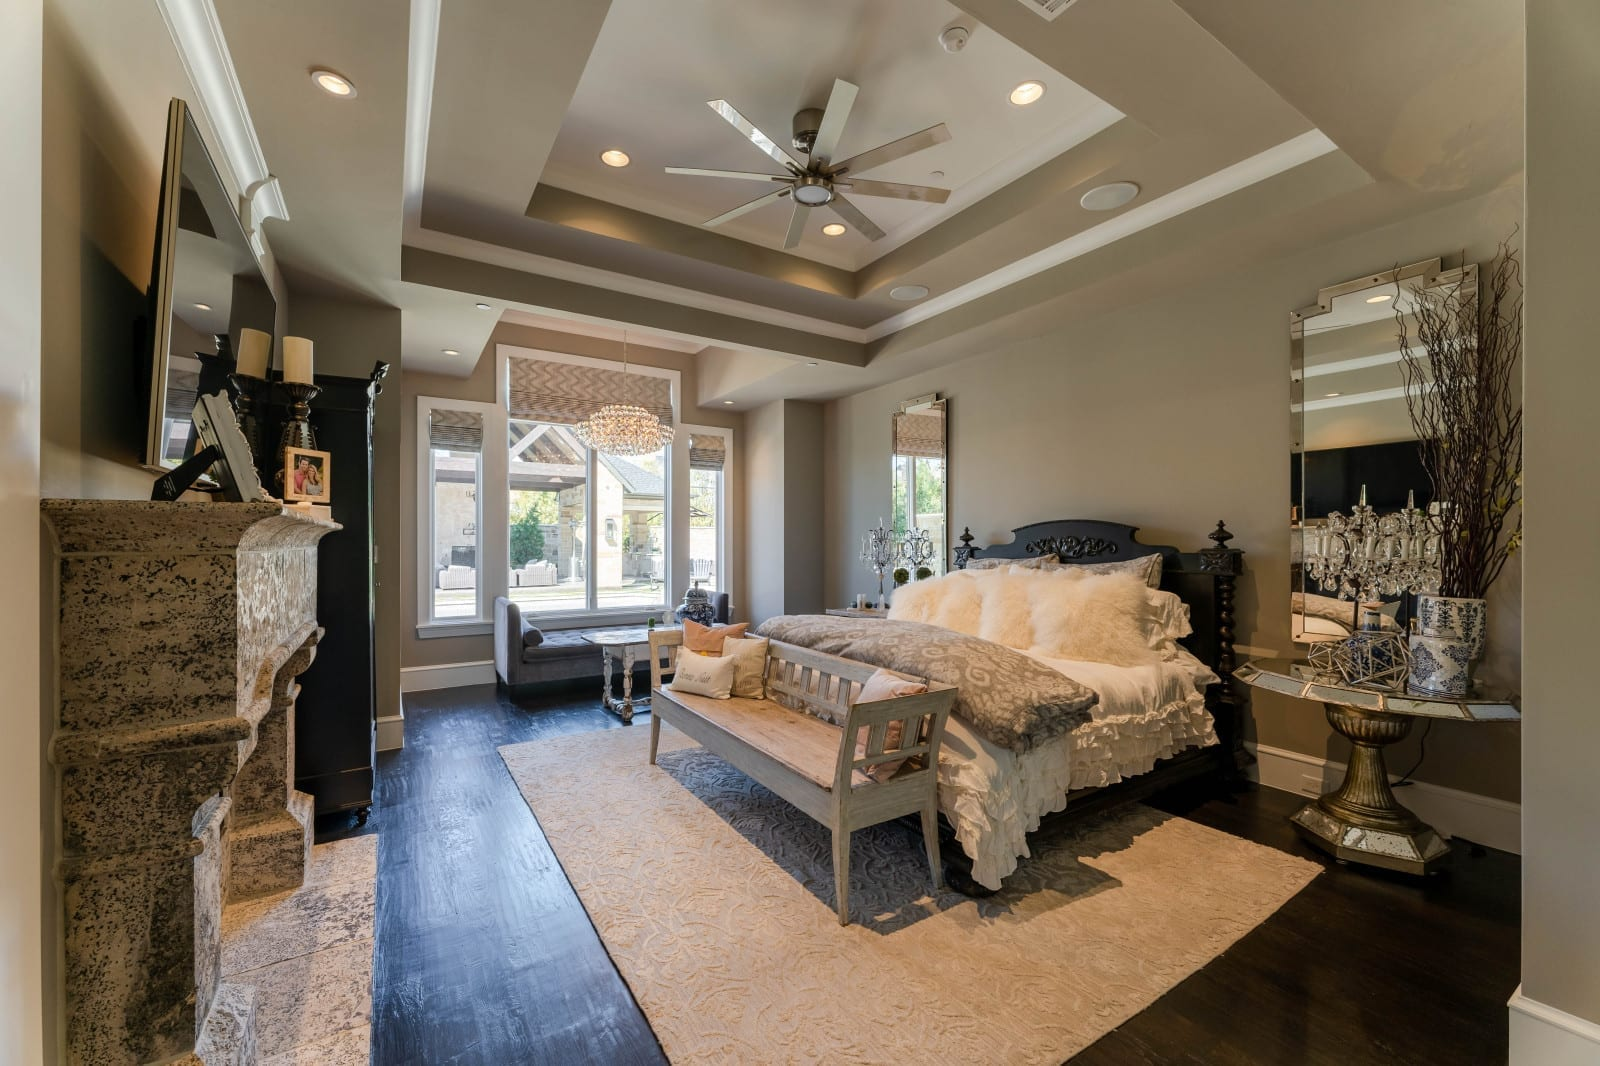 transitional modern style home designed by home builders in Dallas Texas 15 - Millennial Design + Build